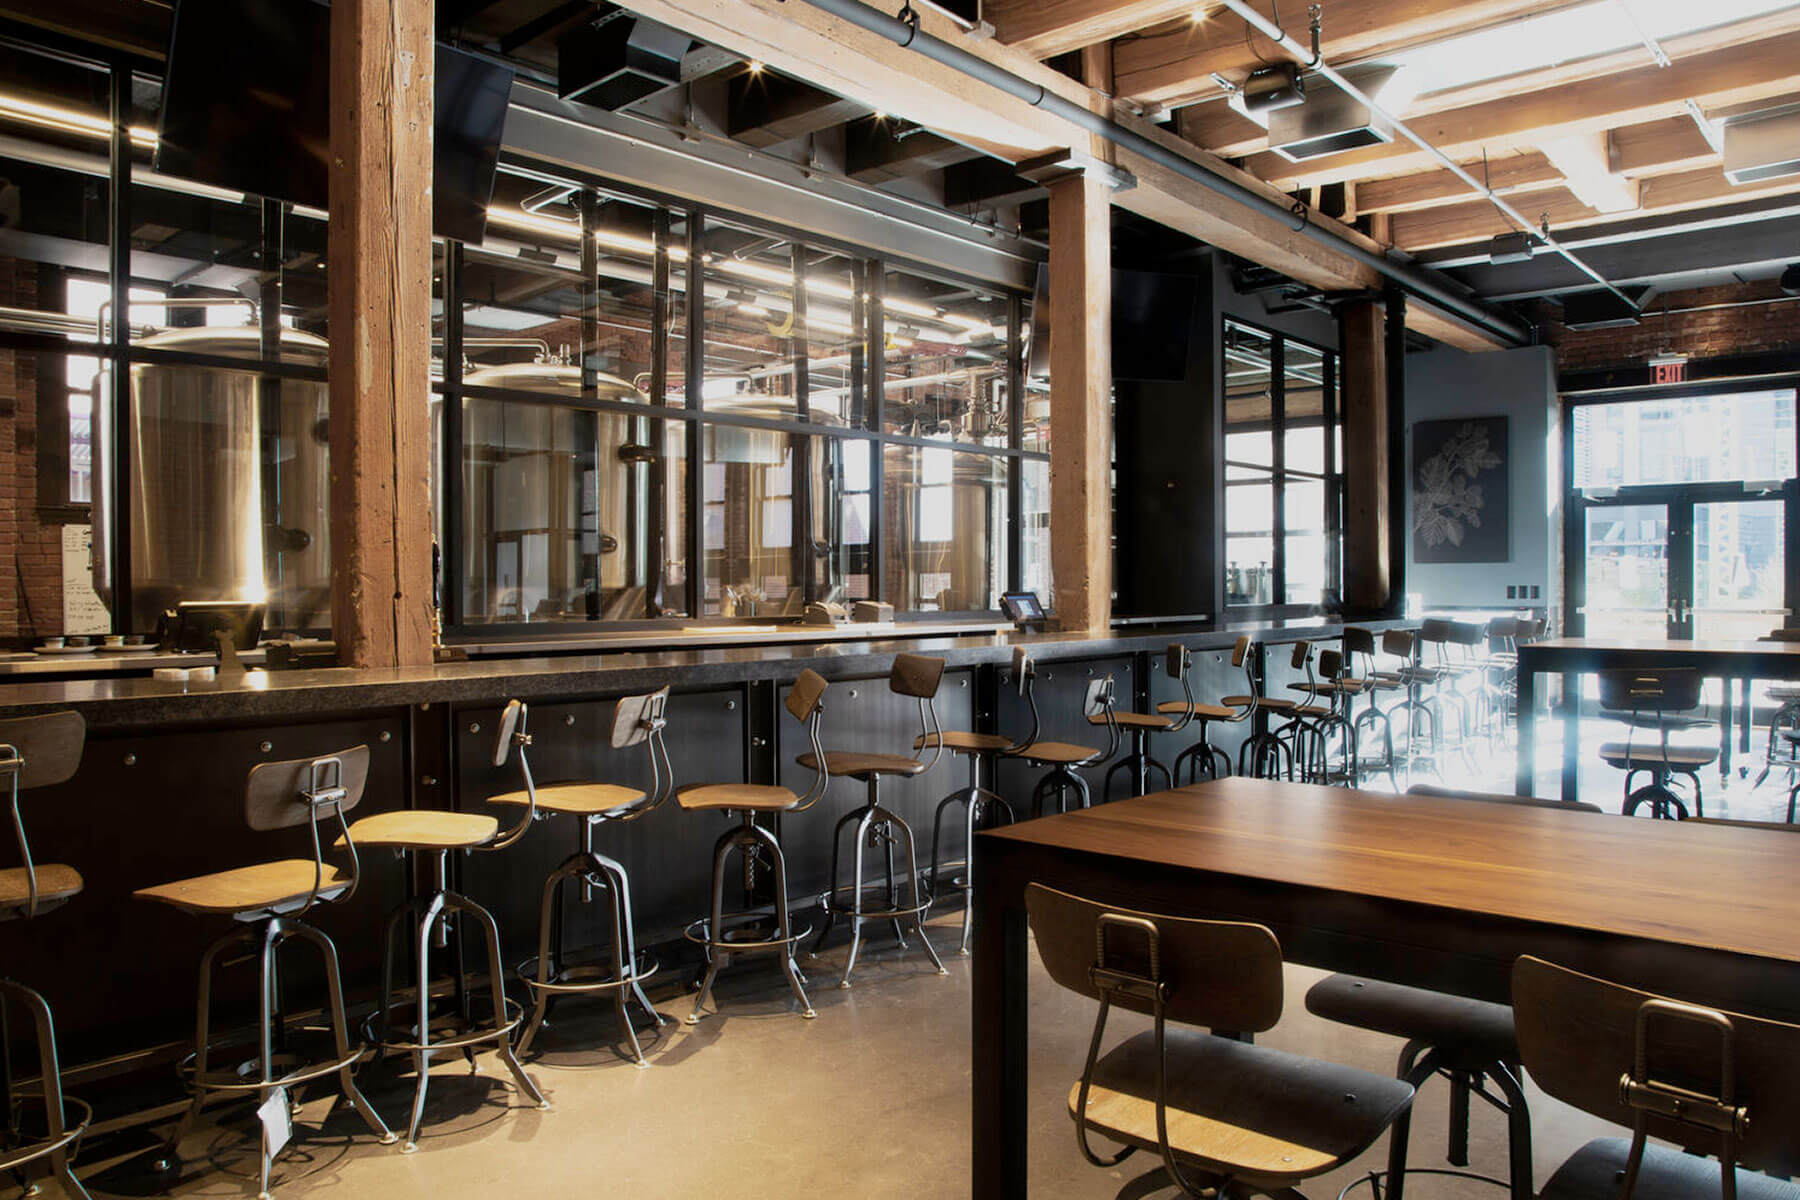 Inside the taproom of the Trillium Brewing Company Fort Point location in Boston, Massachusetts